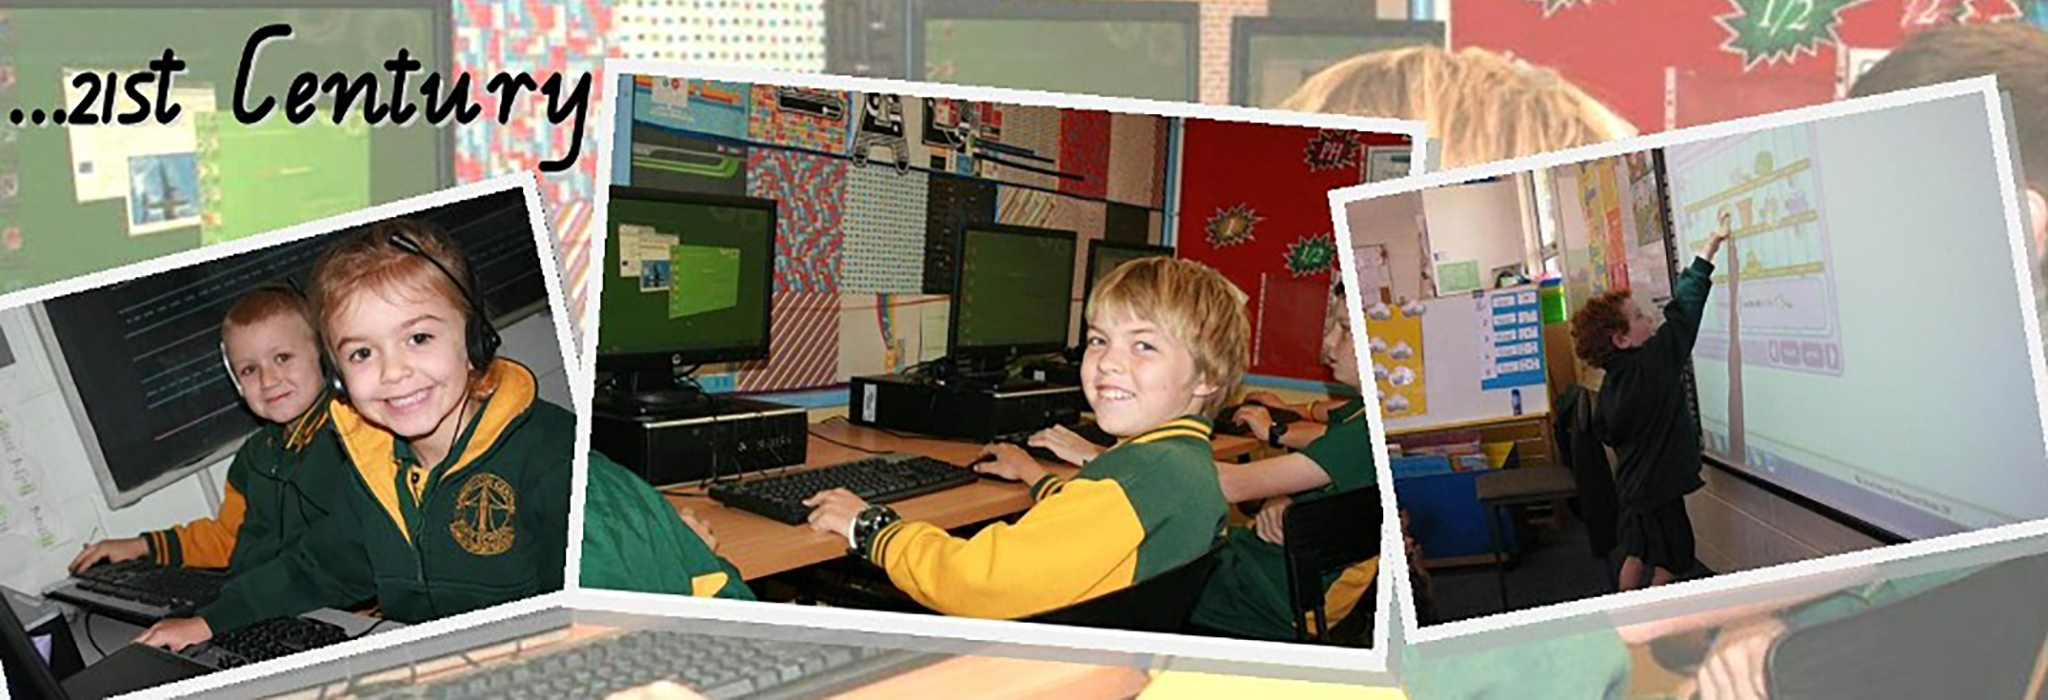 Students using 21st century technology